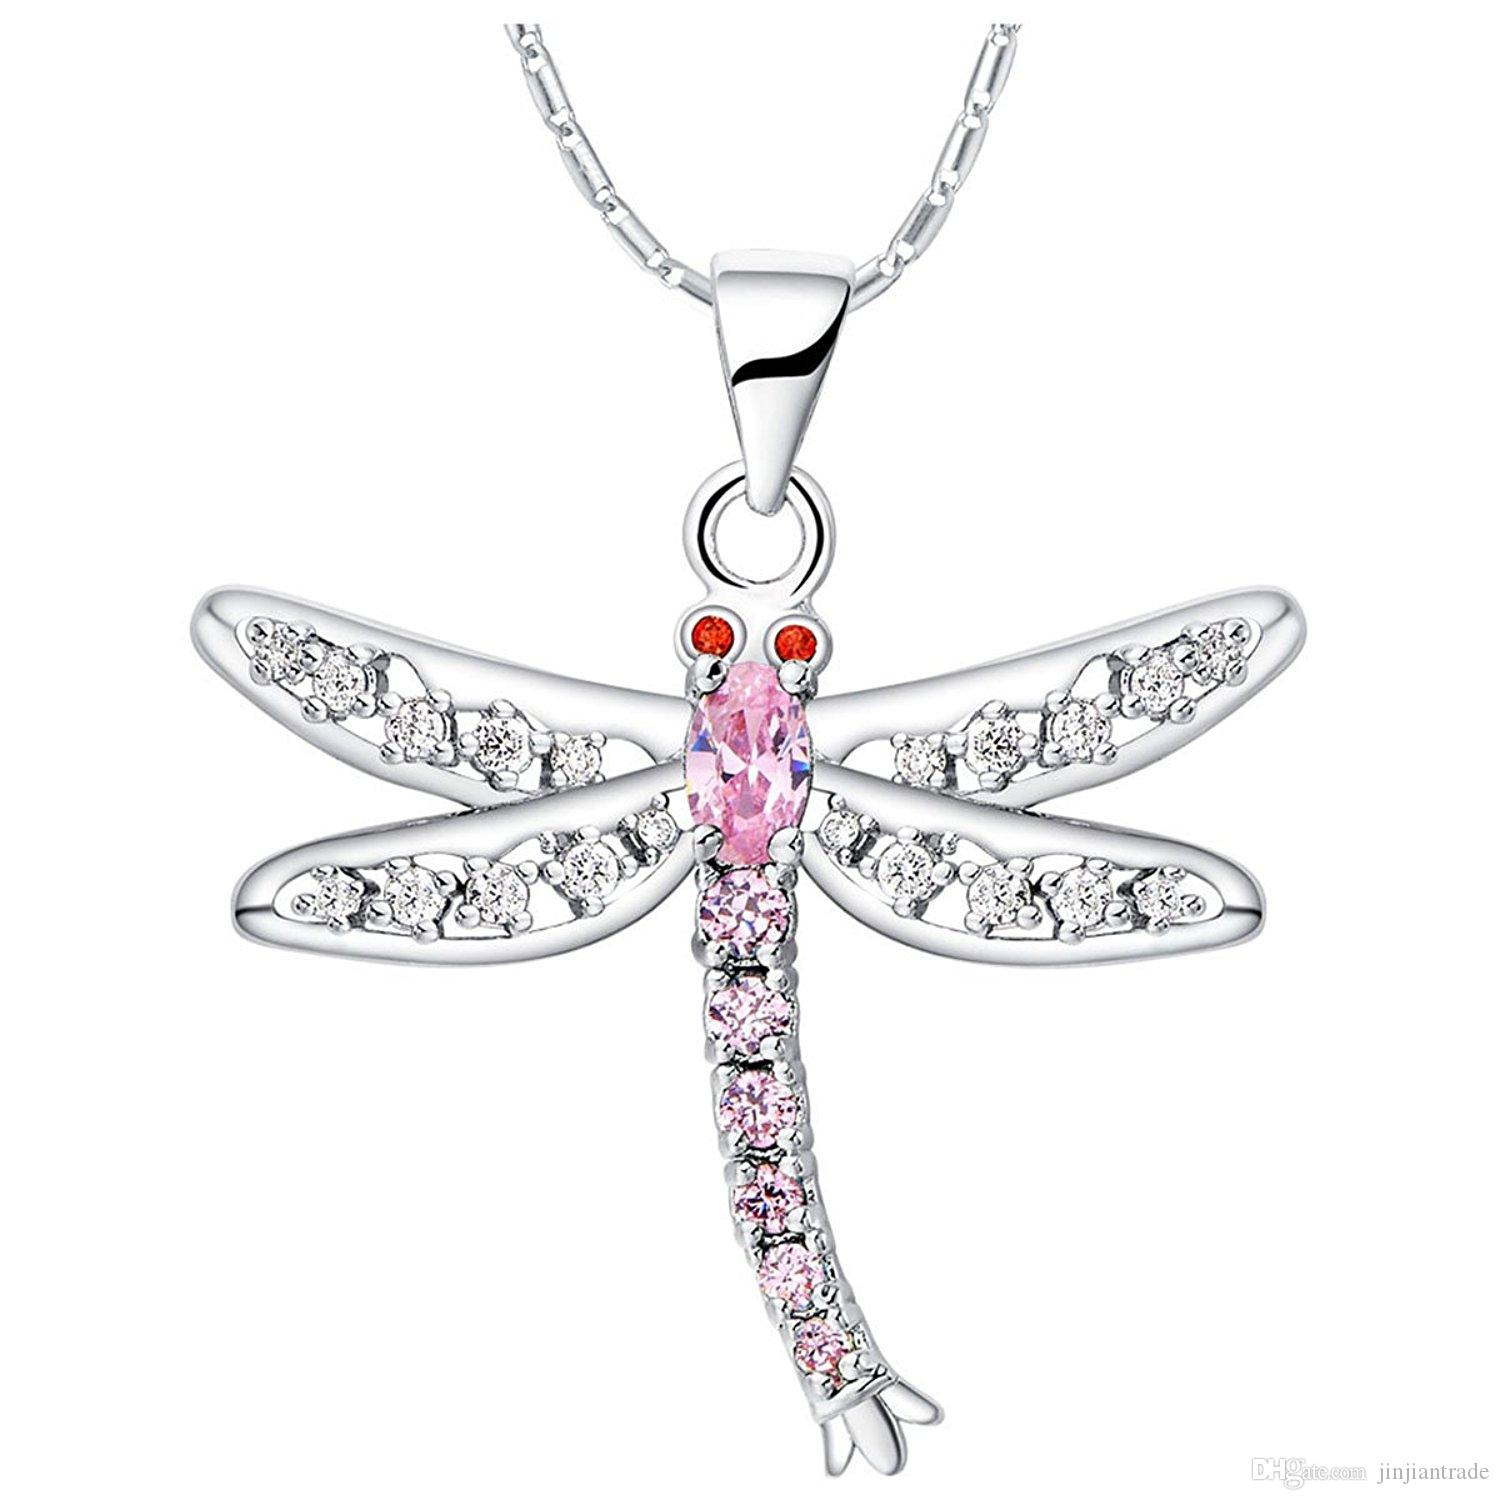 necklace jewellery silver image giant dragonfly products rocks sterling dandy